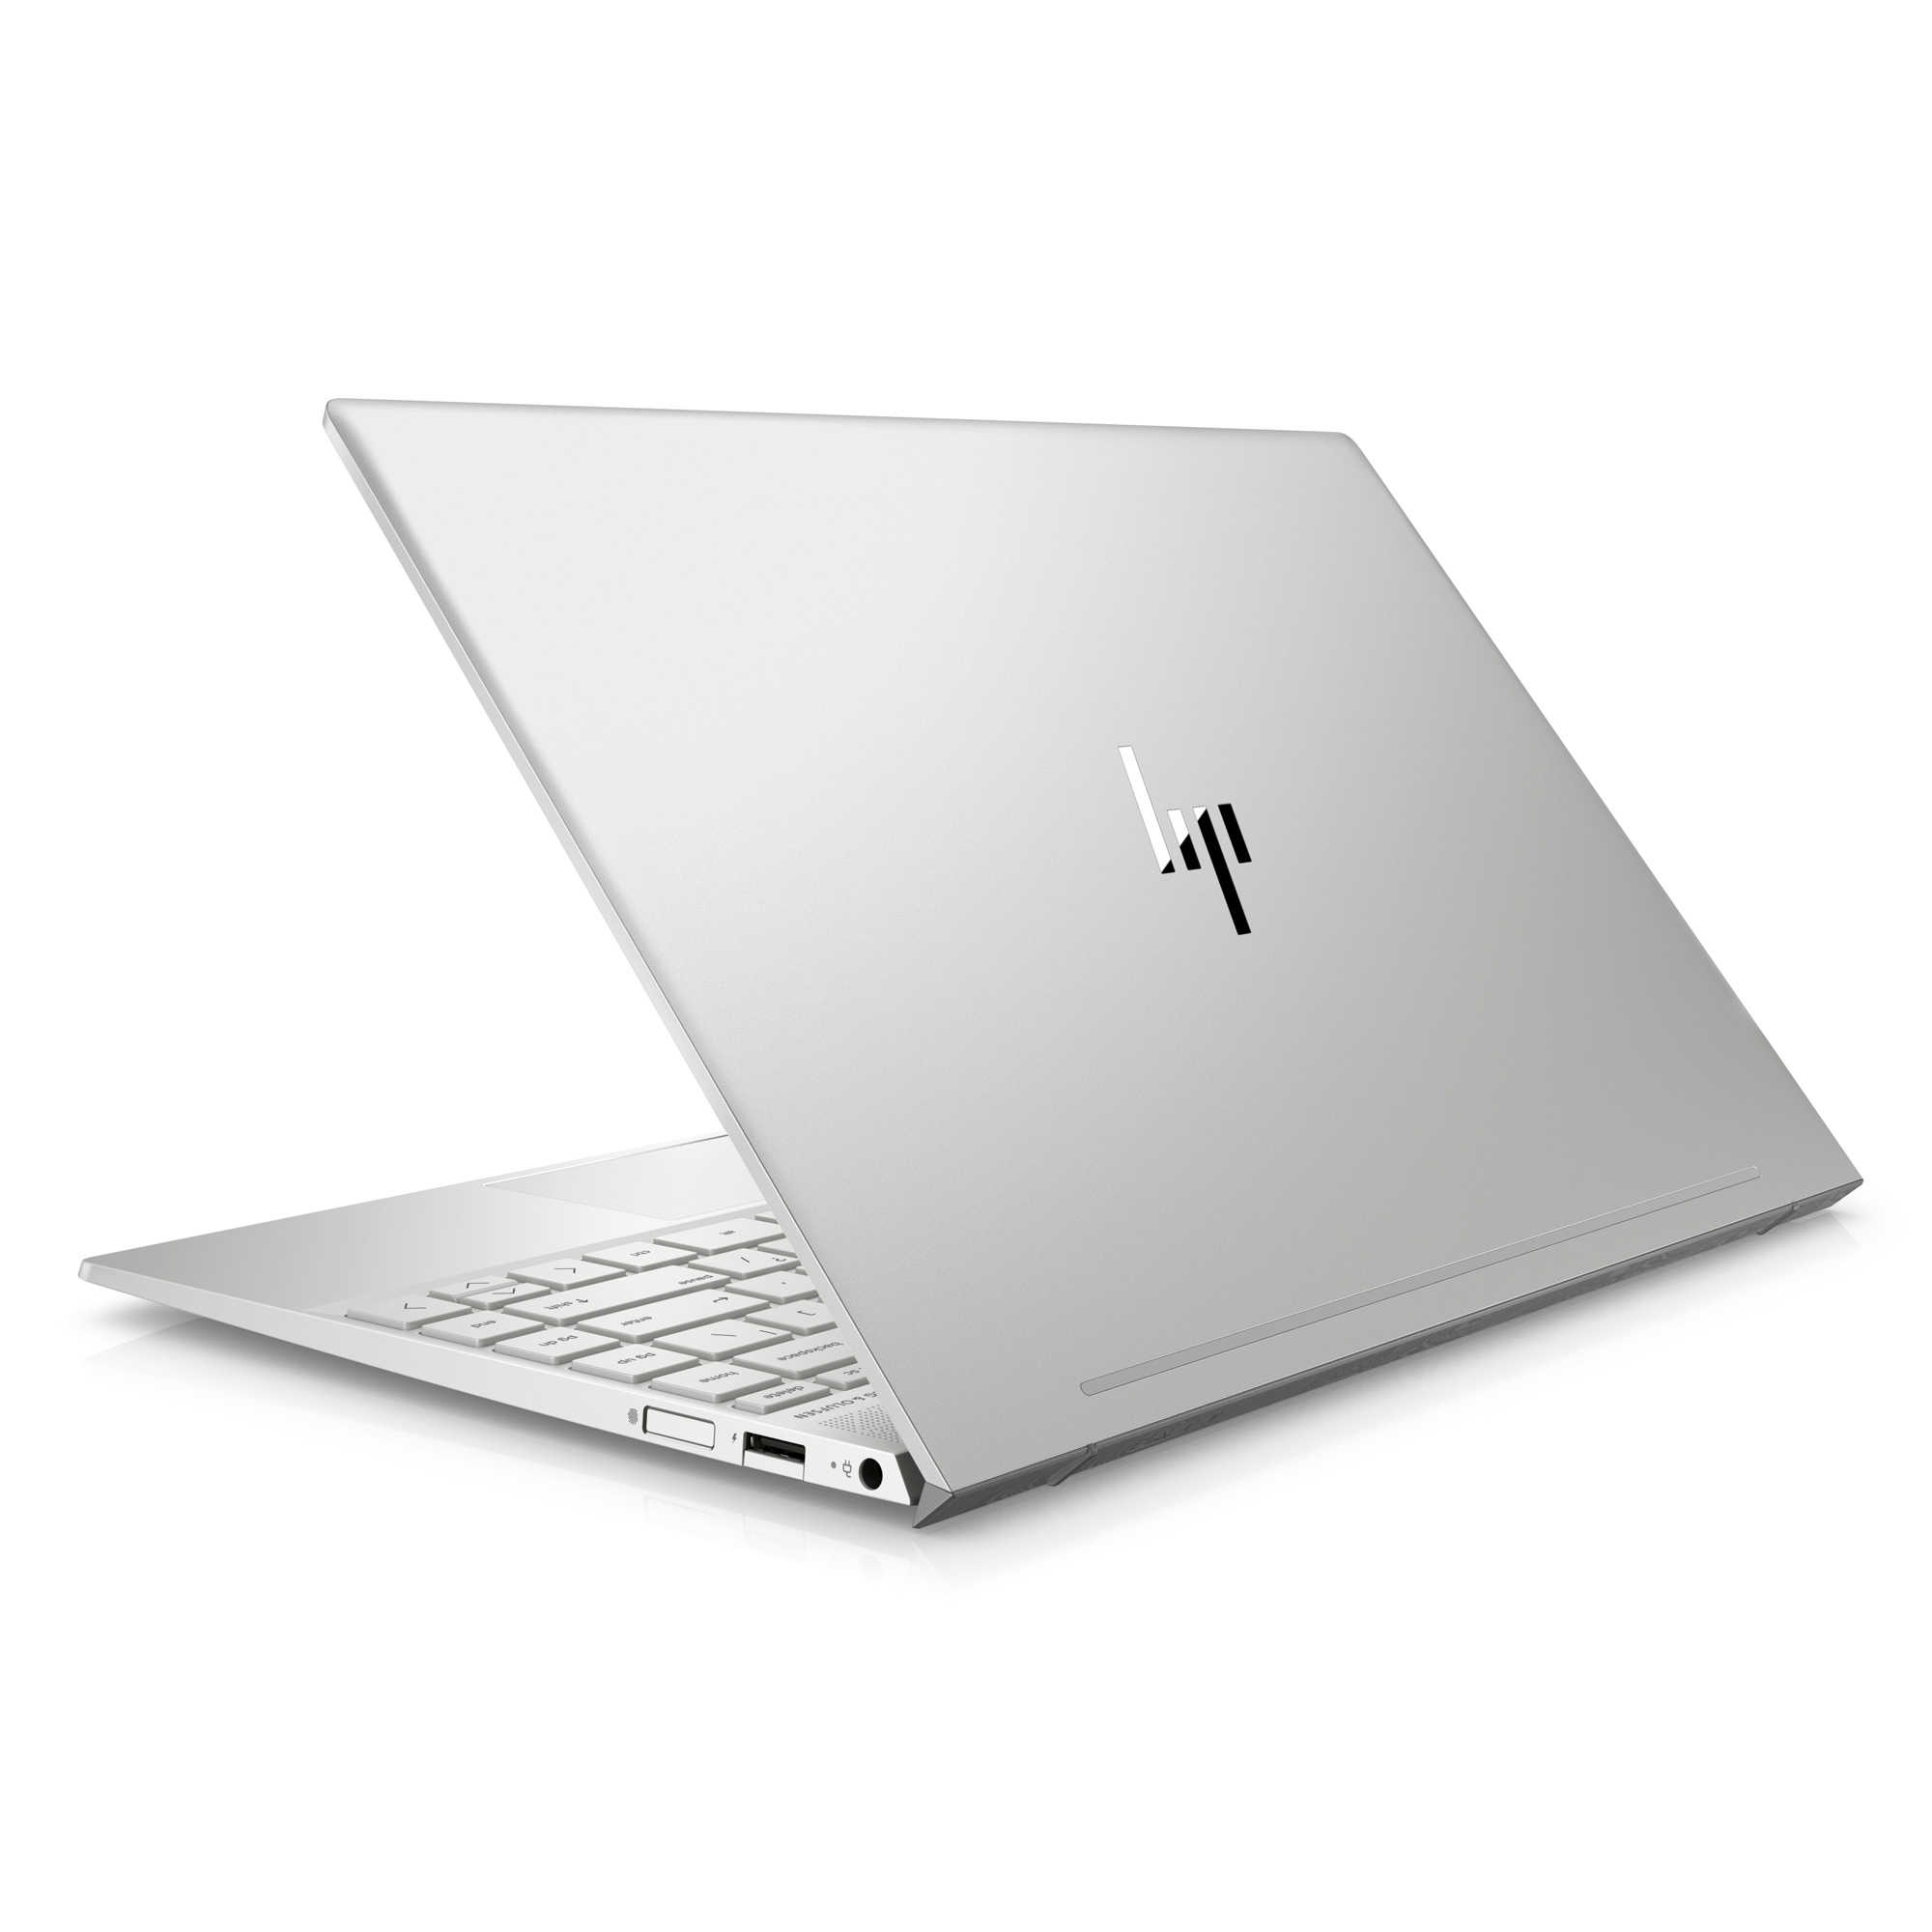 HP Envy 13-AH0010NR Natural Silver 13.3 inch Touch Laptop, Windows 10, Core i7-8550U QC Processor, 8GB Memory, 256 GB SSD PCIe Hard Drive, UMA Graphics, Backlit Keyboard, Bang & Olufsen